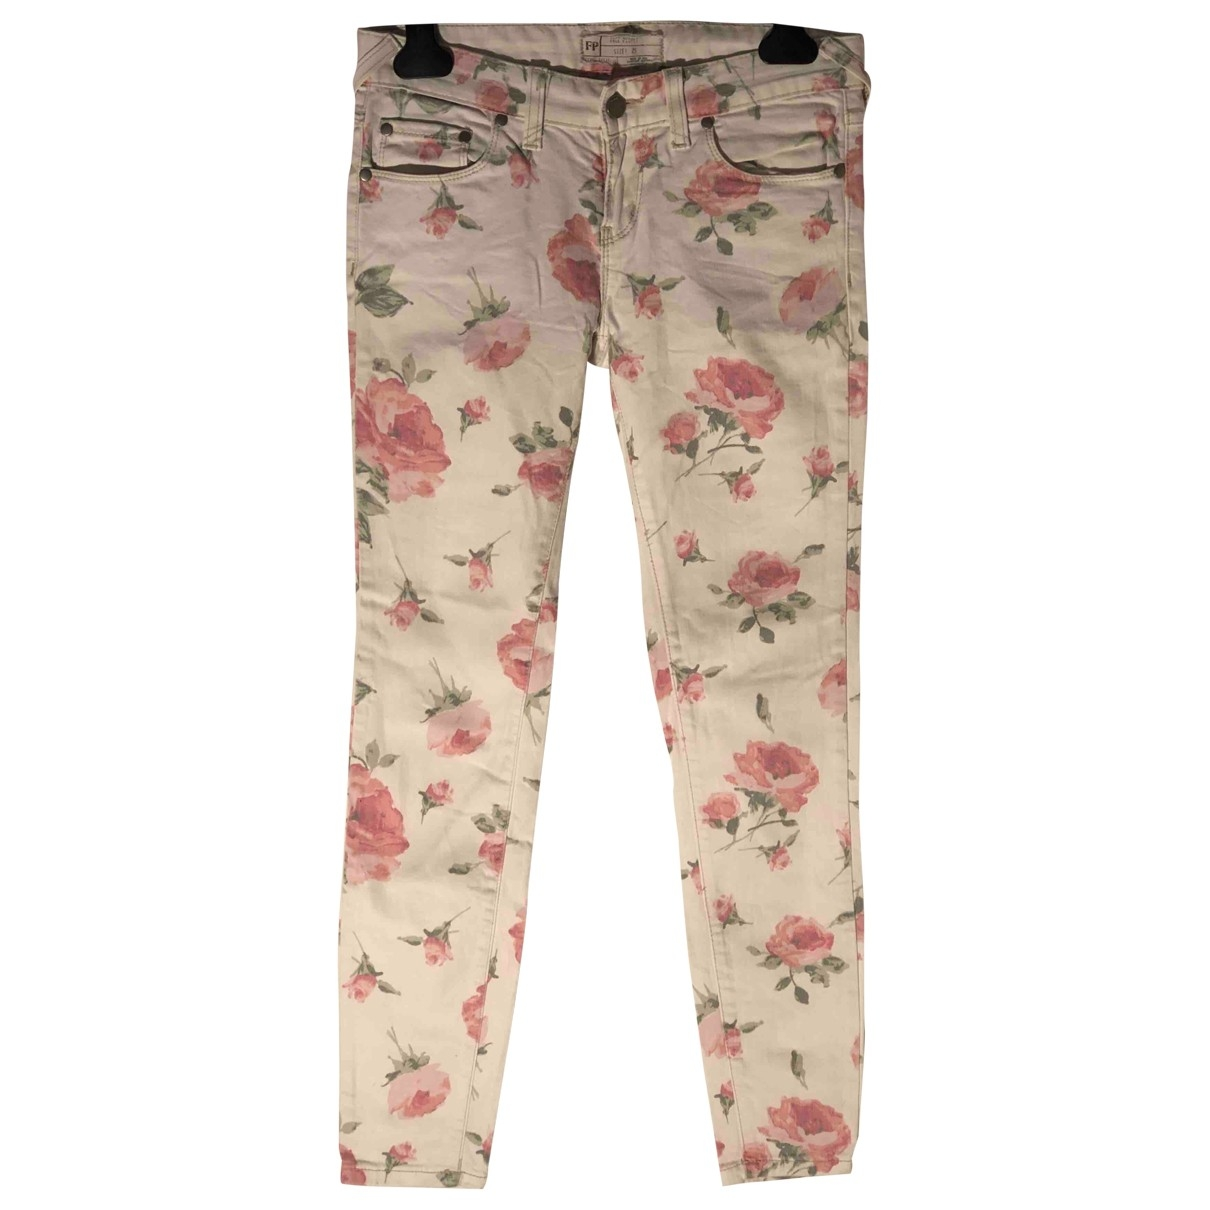 Free People \N White Cotton - elasthane Jeans for Women 25 US